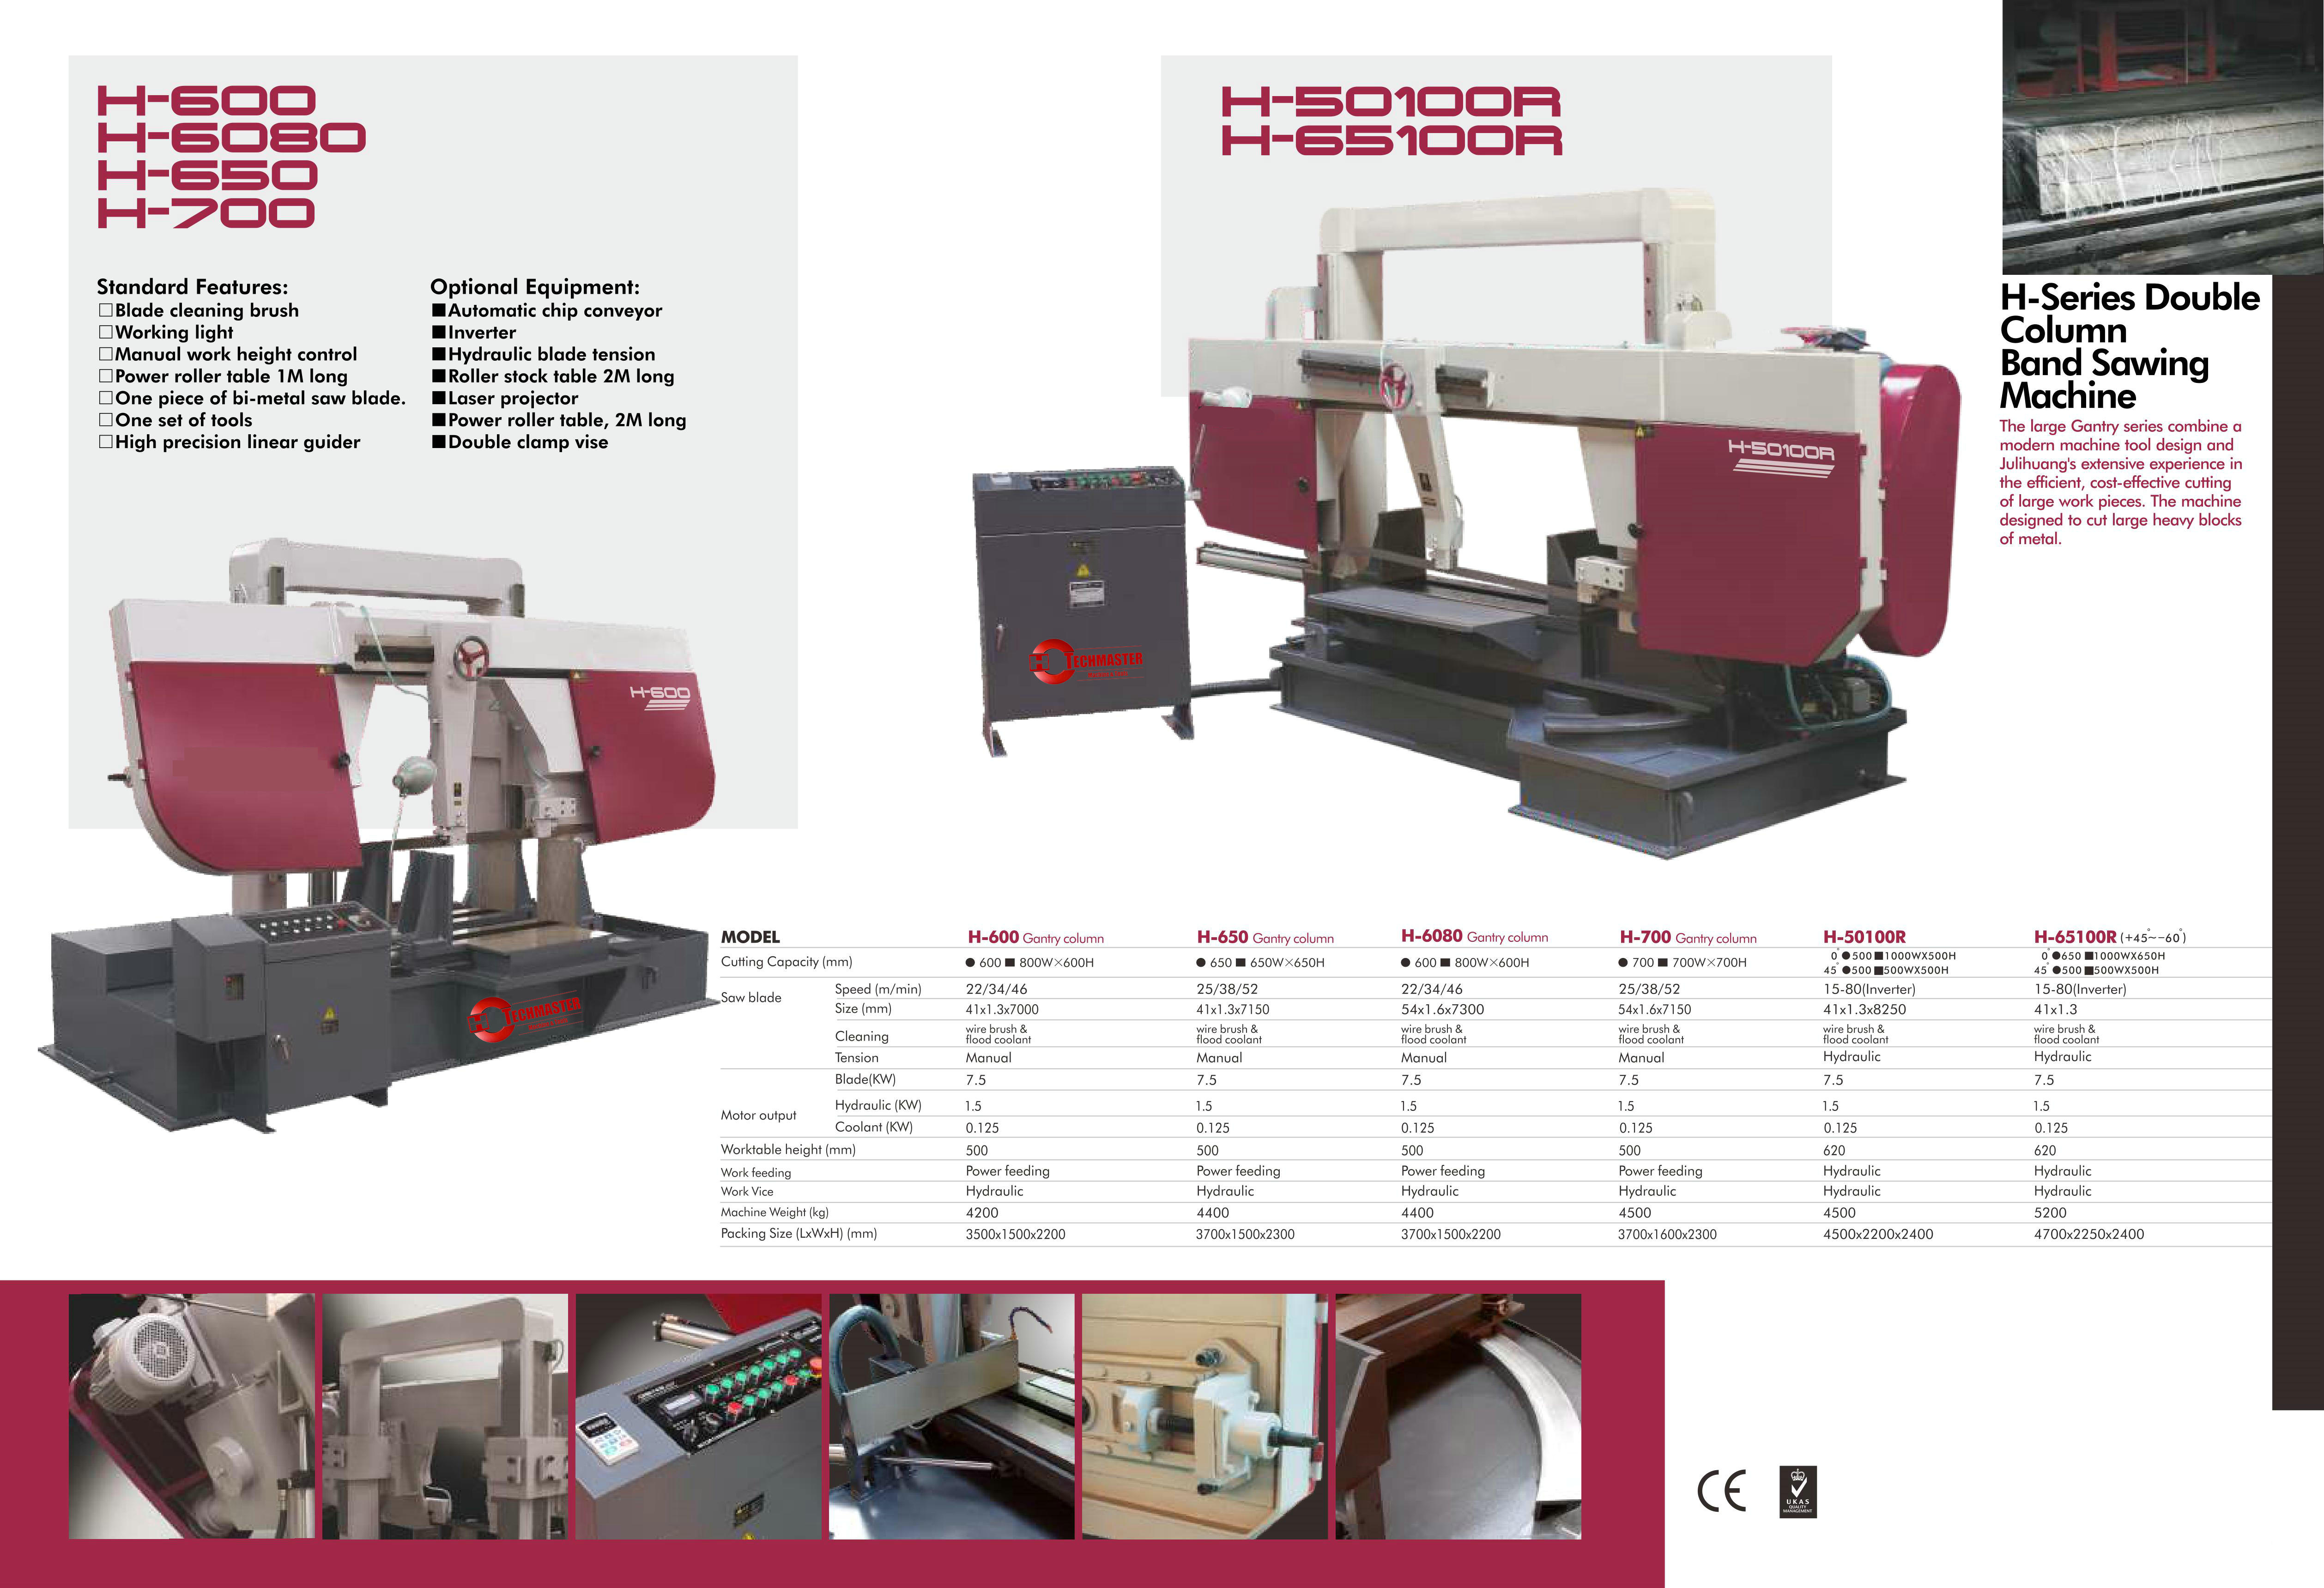 METAL BAND SAWING MACHINE H-600/H-650/H-6080/H-700/H-50100R/H-65100R